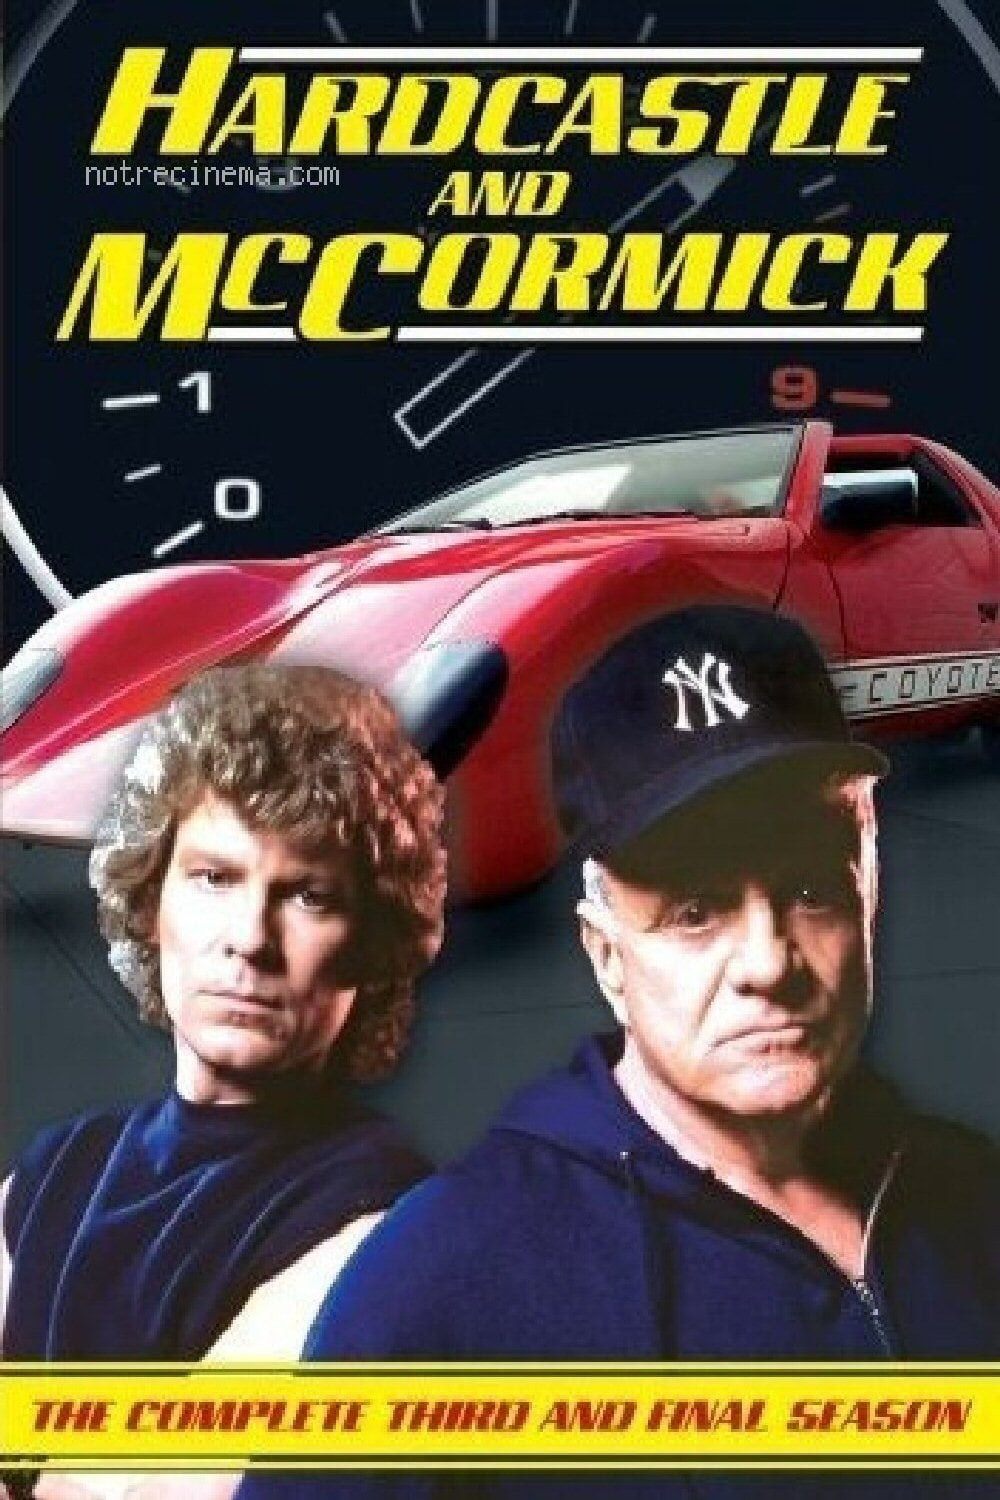 Hardcastle and McCormick Season 3